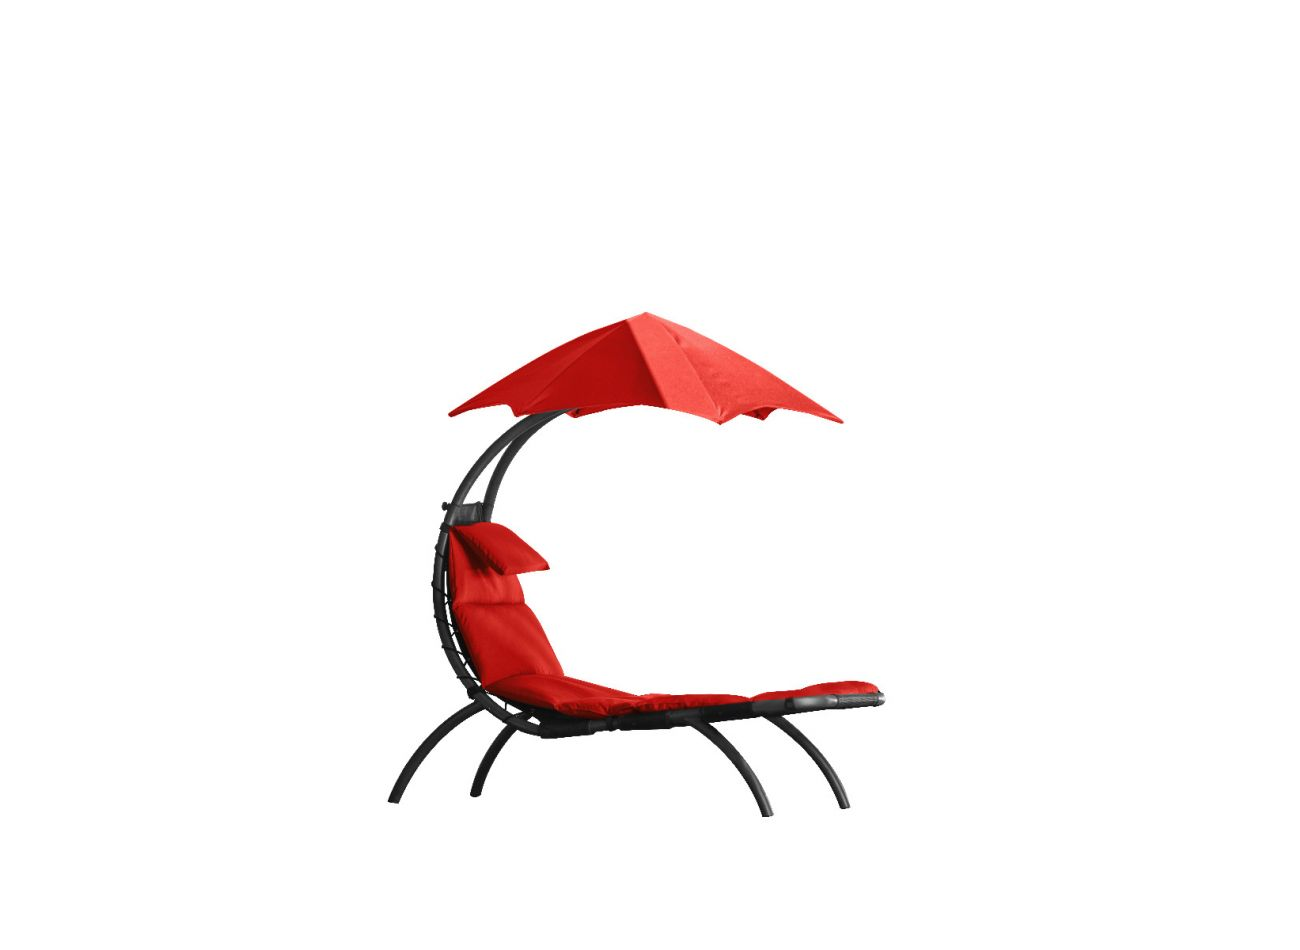 Original Dream Lounger Red